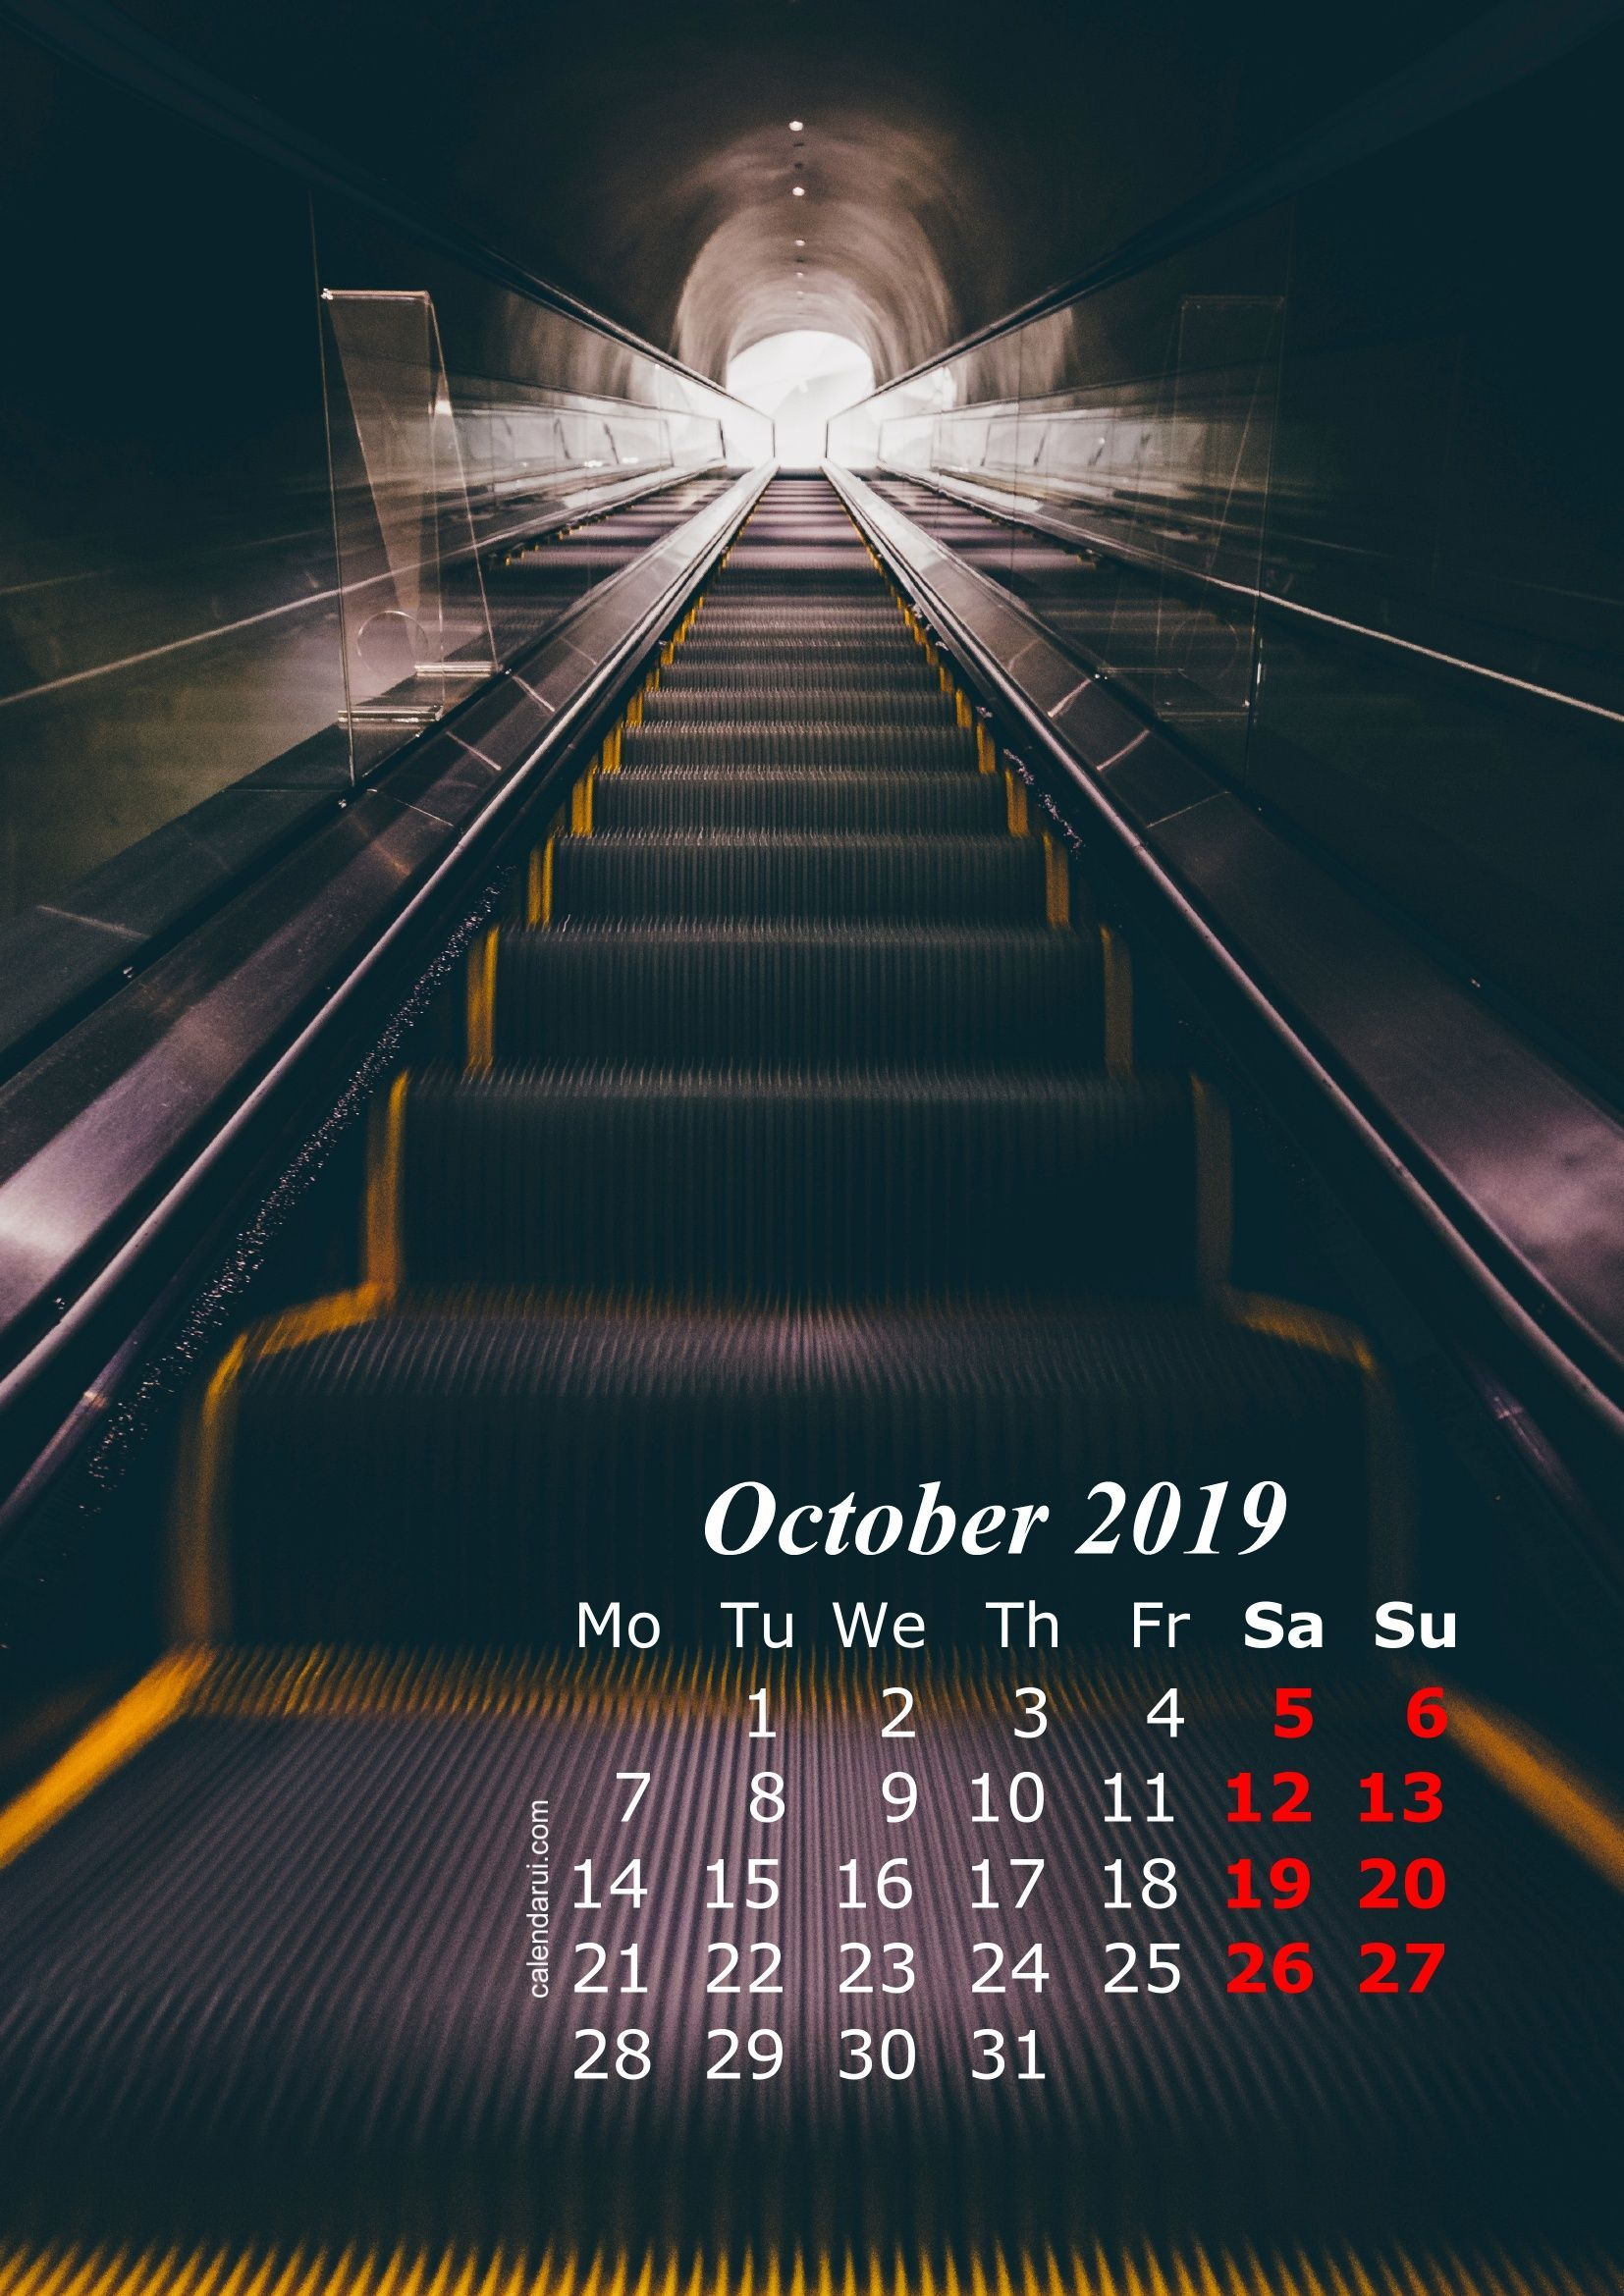 October 2019 iPhone Calendar Wallpaper (With images